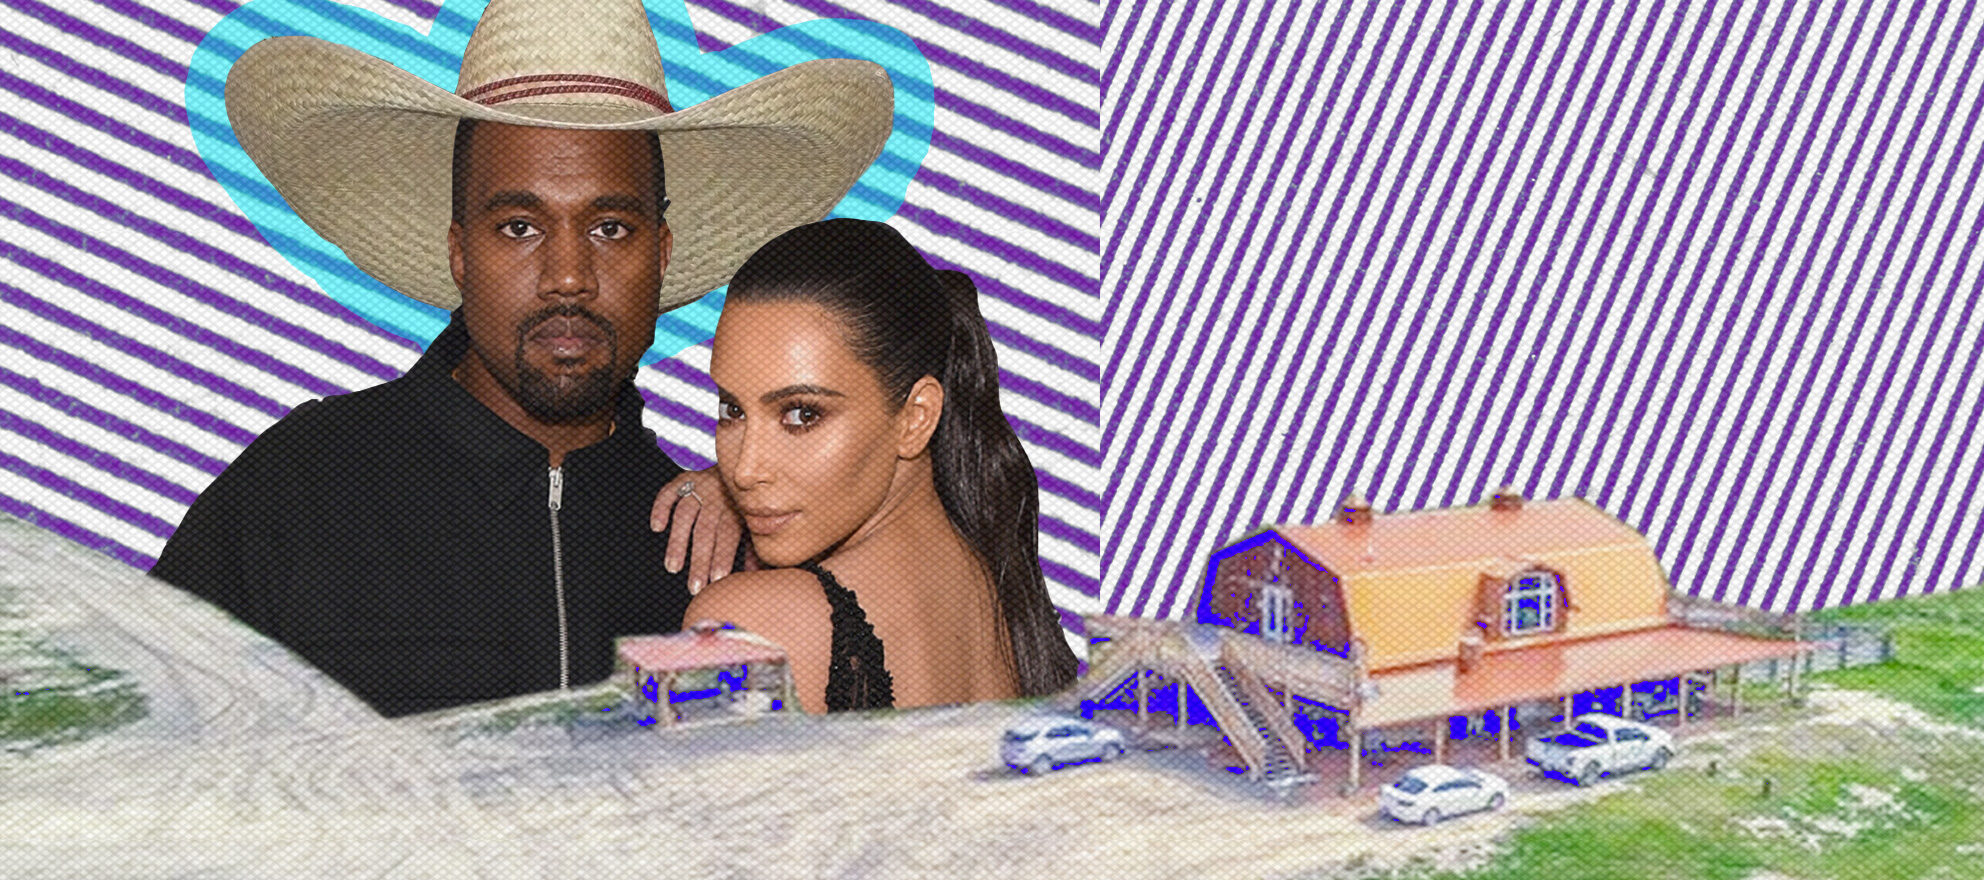 Kanye West and Kim Kardashian buy $14M Wyoming ranch